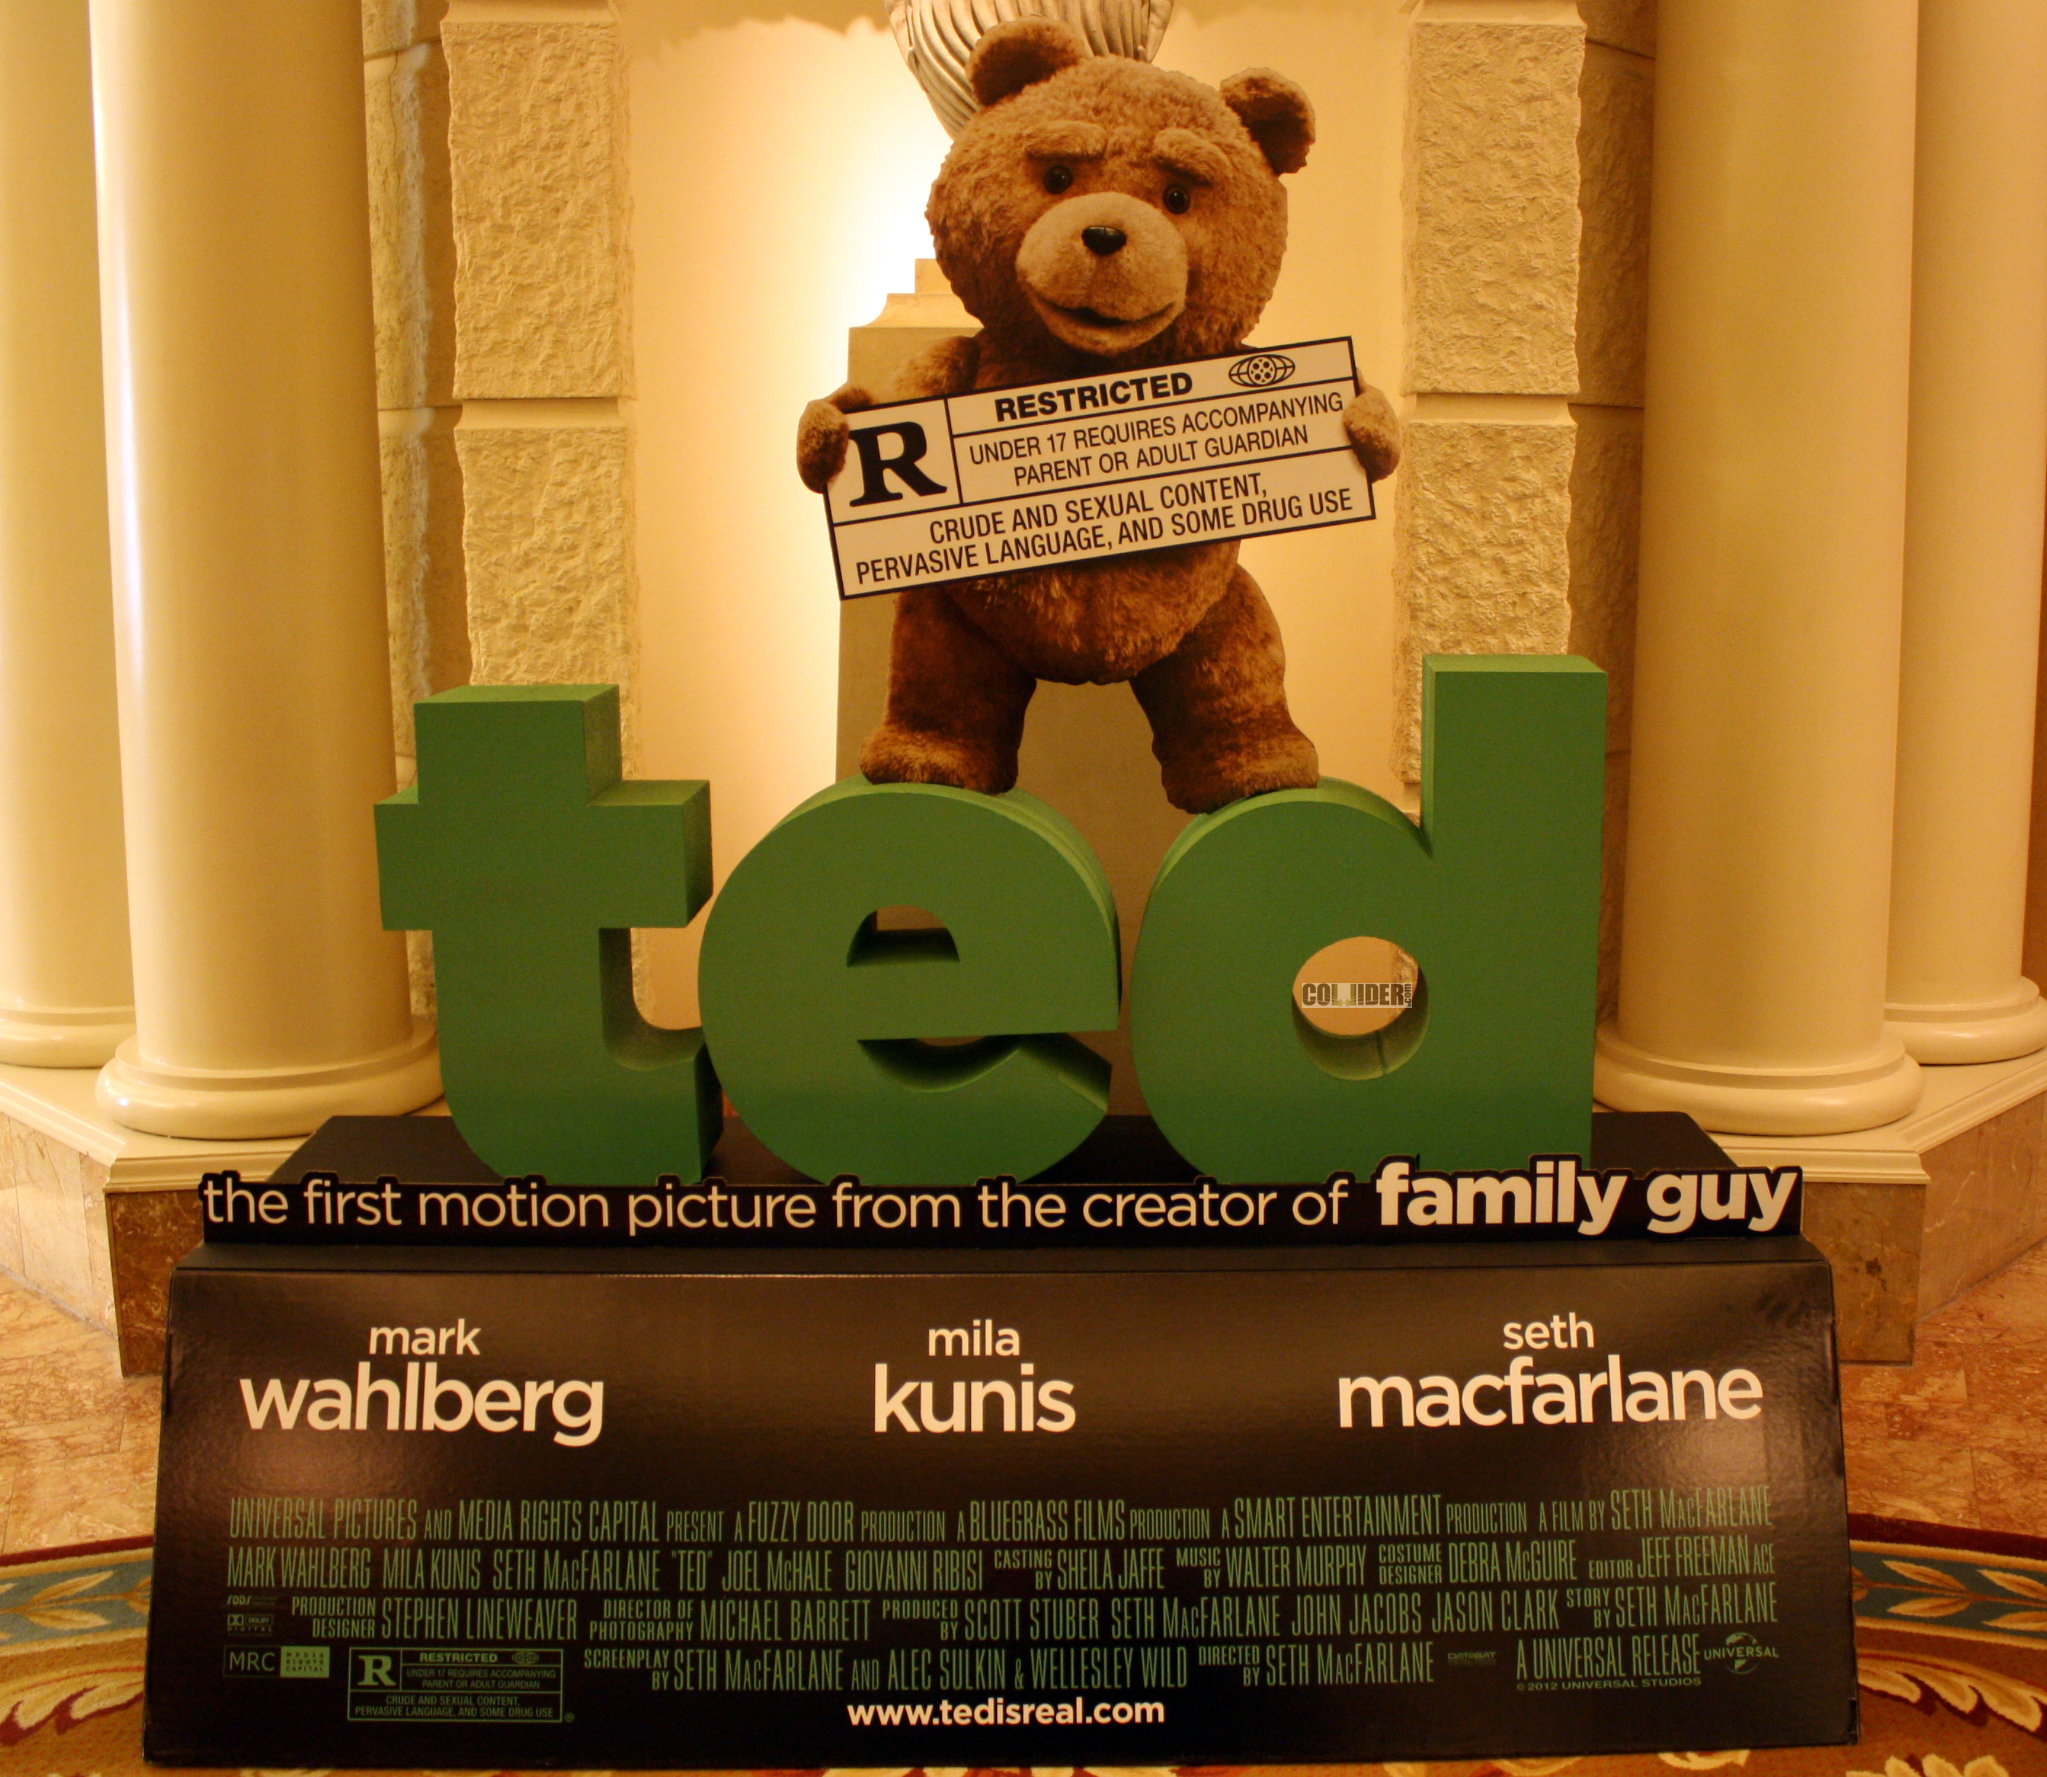 ted-movie-theater-standee.jpg